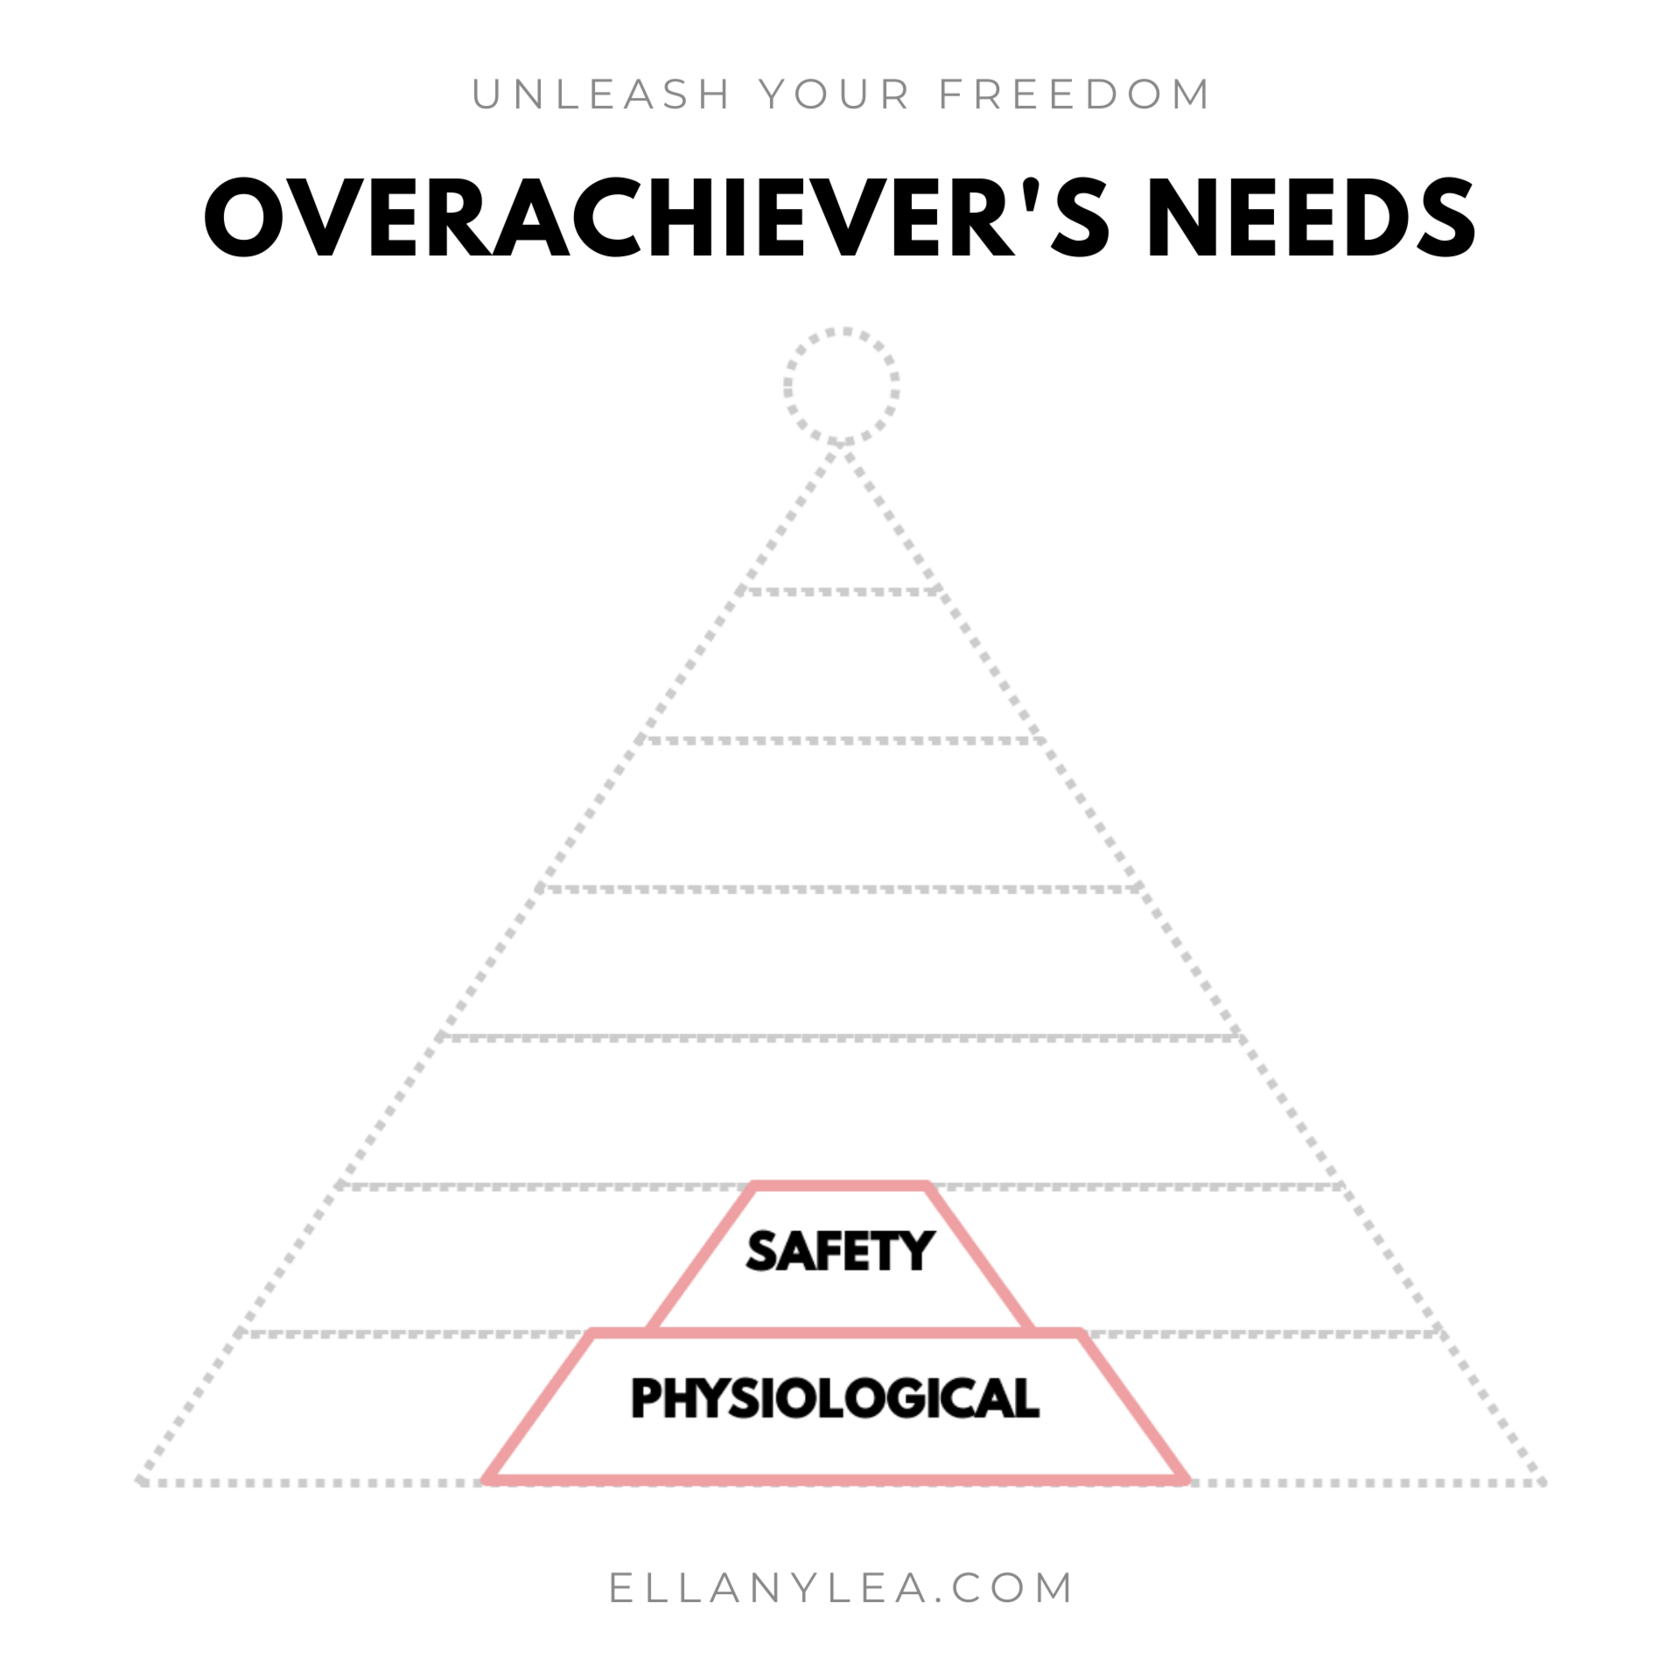 EL - Overachievers Hierarchy of Needs - Stack safety